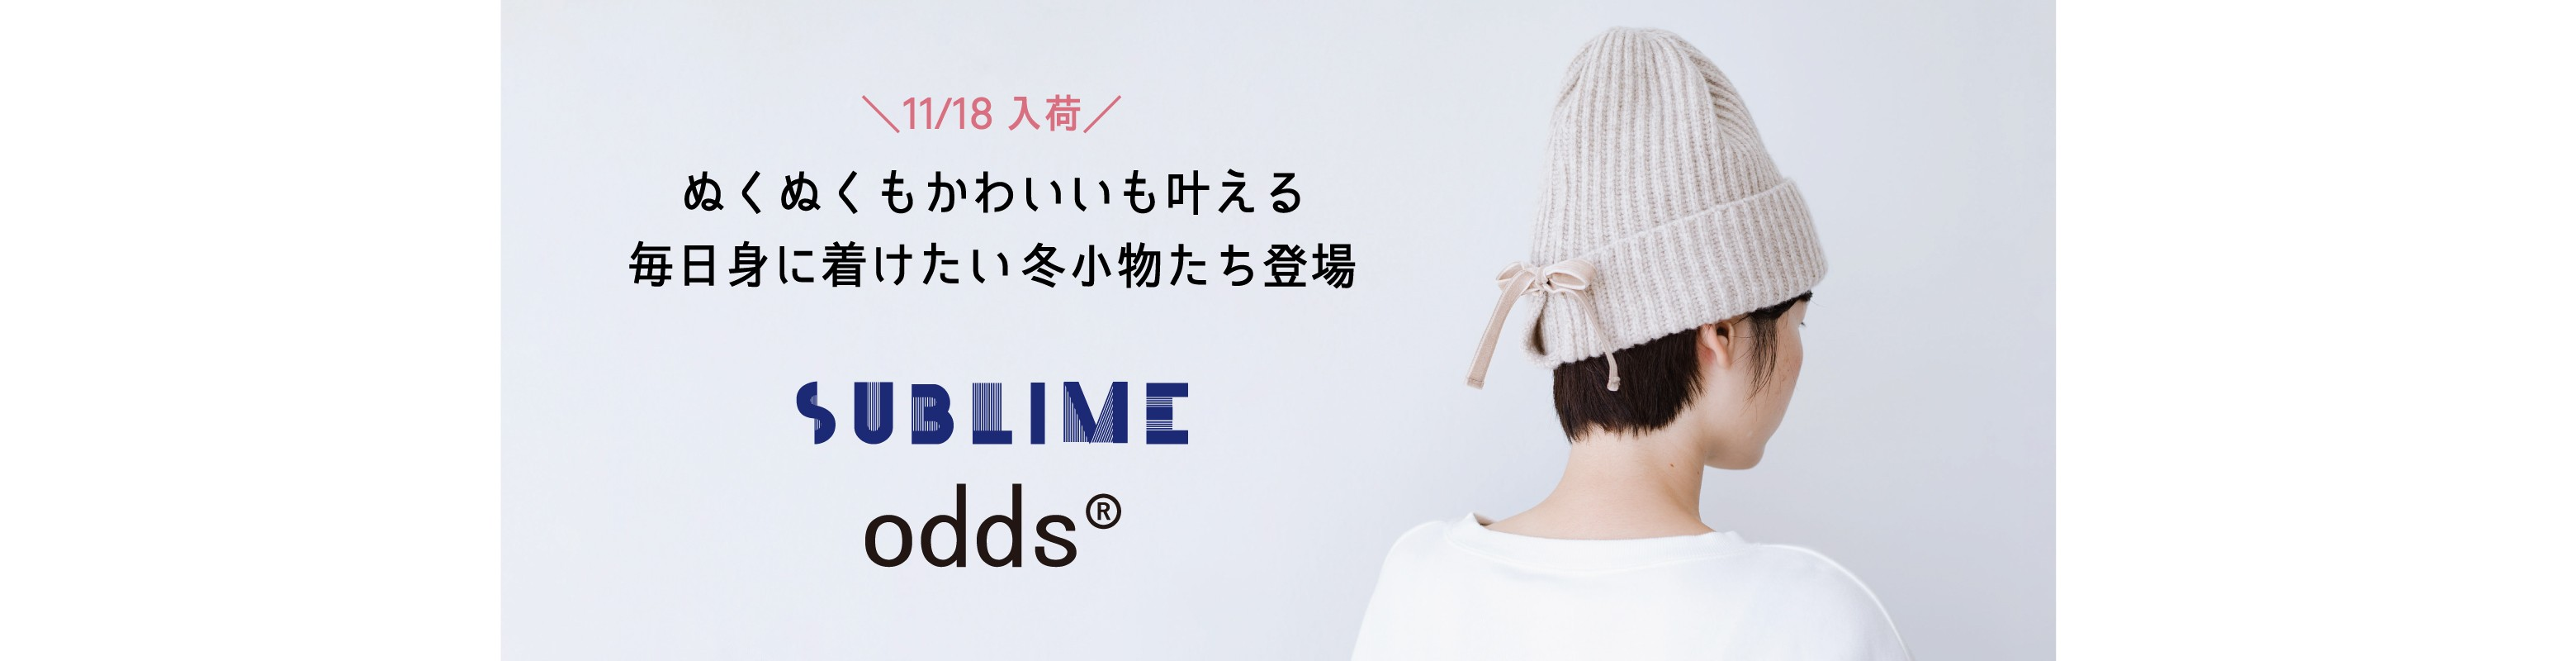 \11/18UP/SUBLIME & odds 入荷しました!